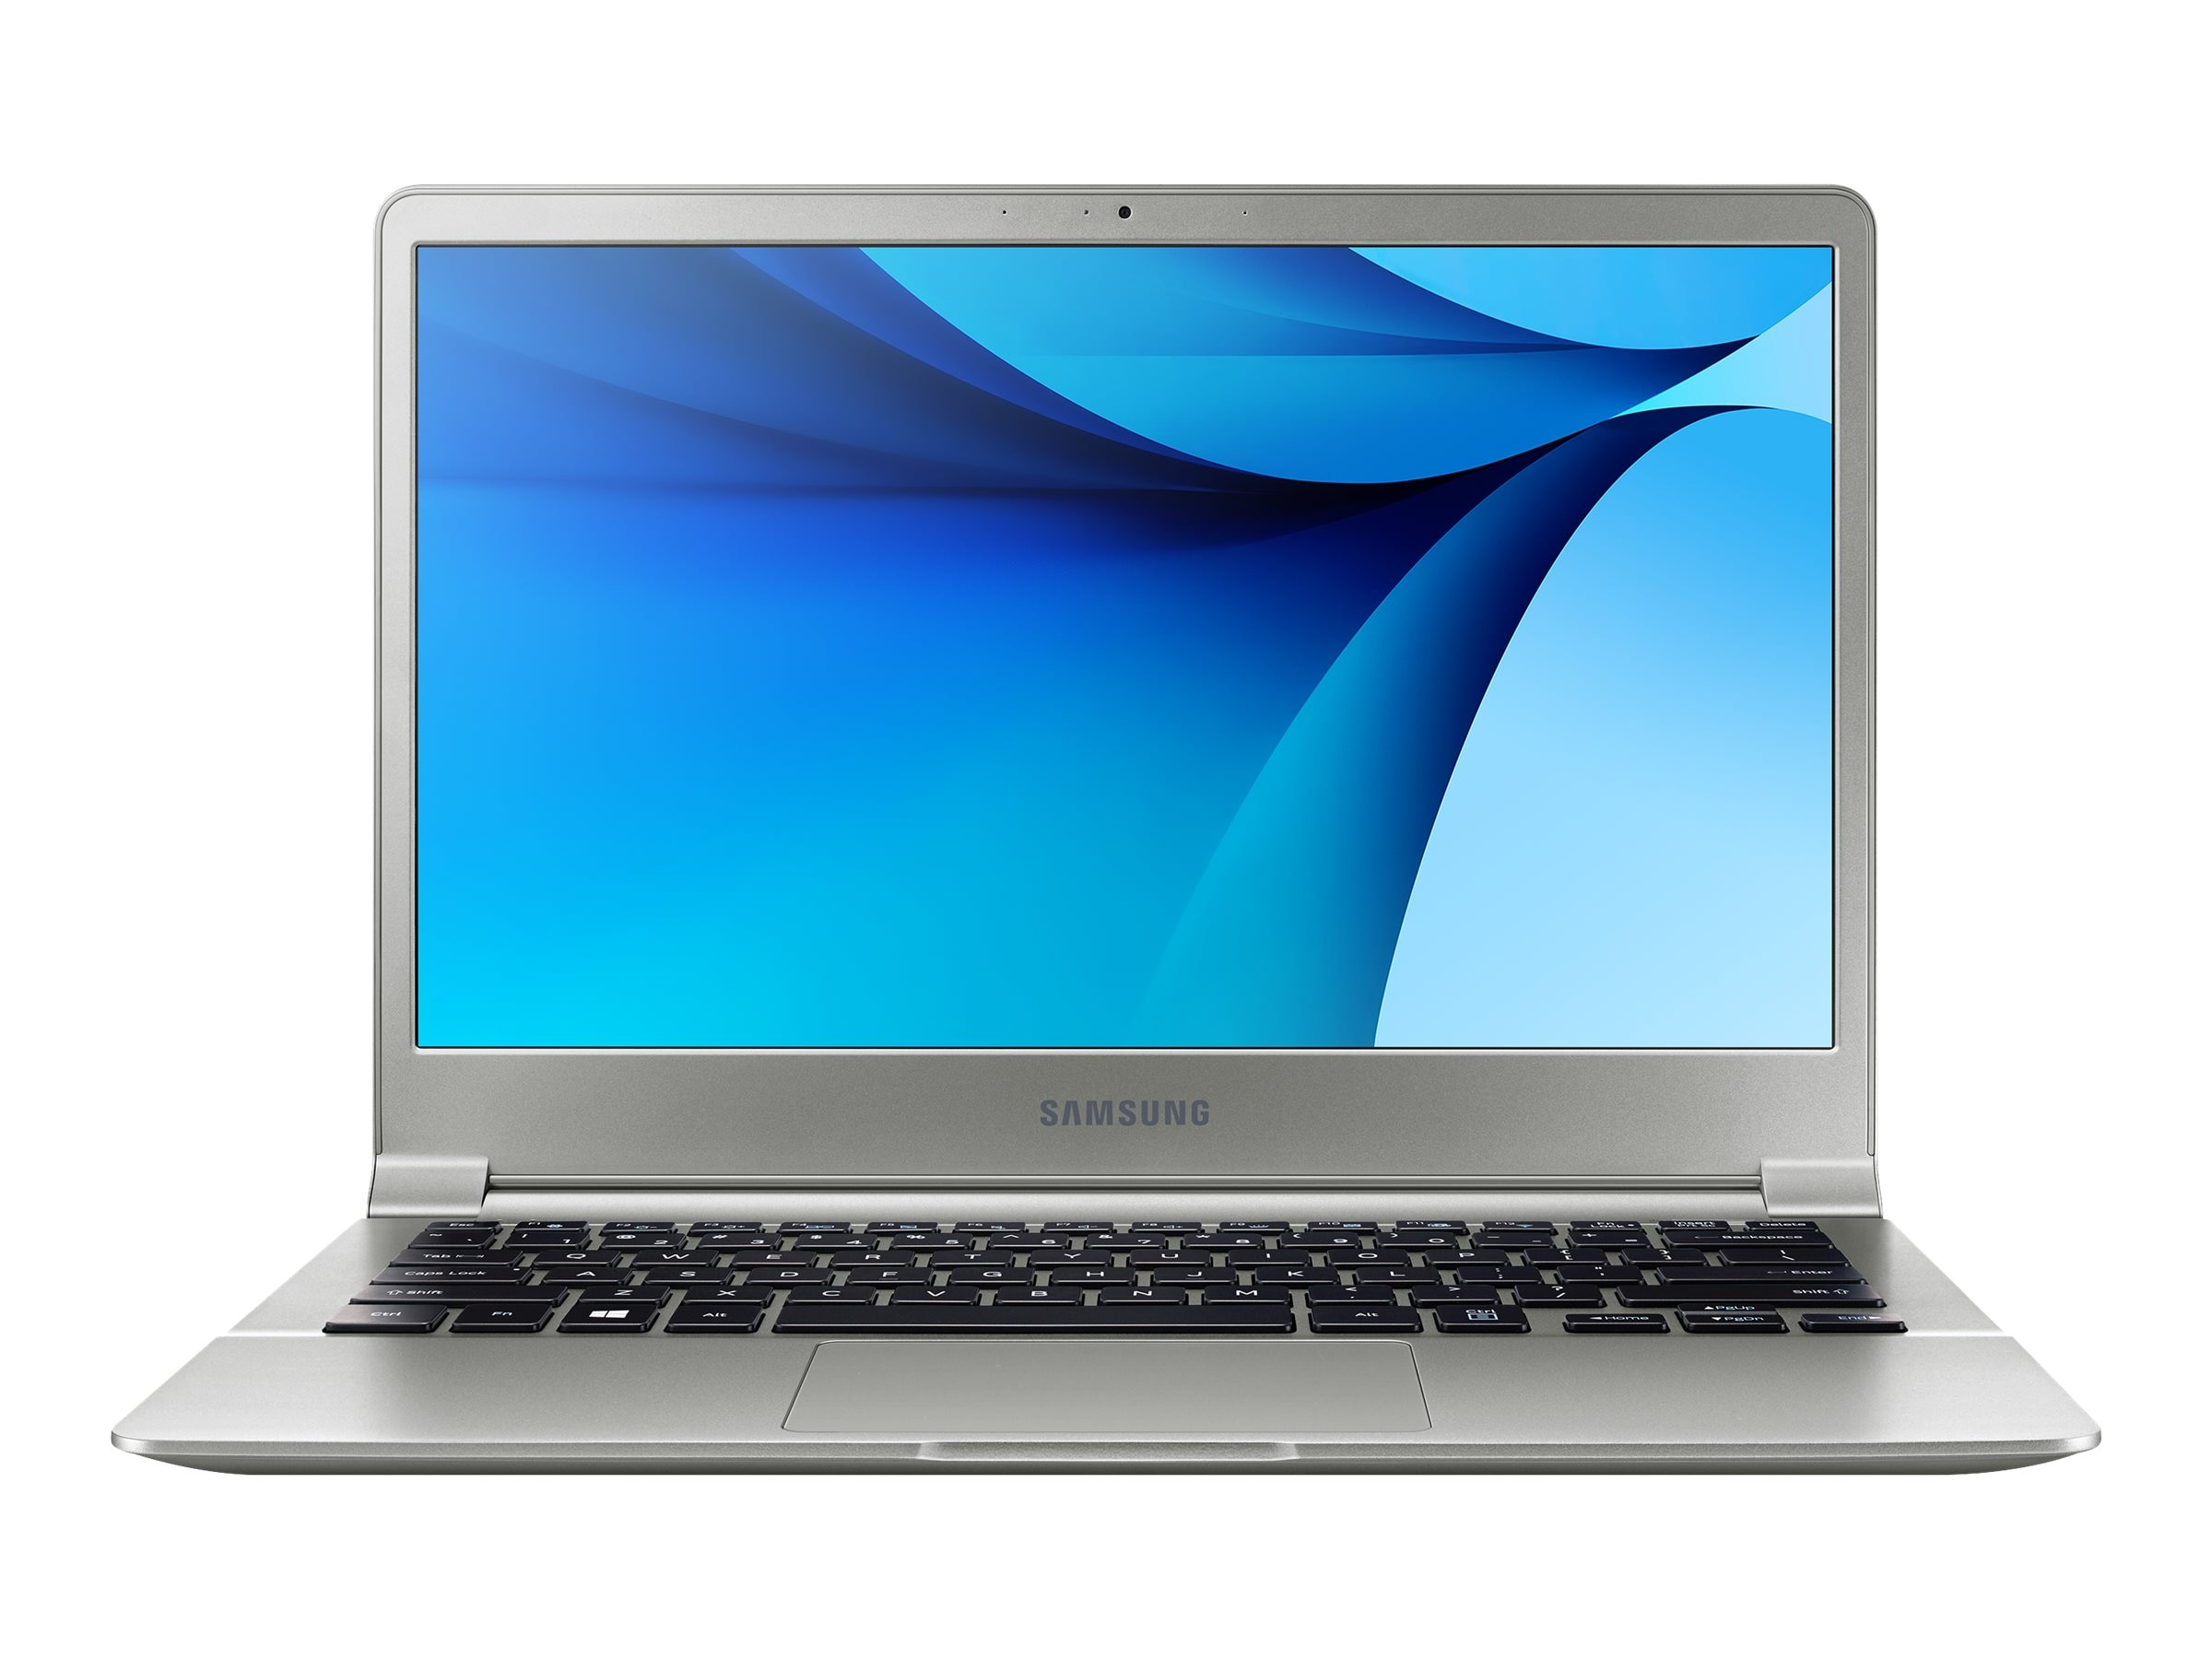 Samsung Notebook PC Core i5-6200U 8GB 128GB 13.3